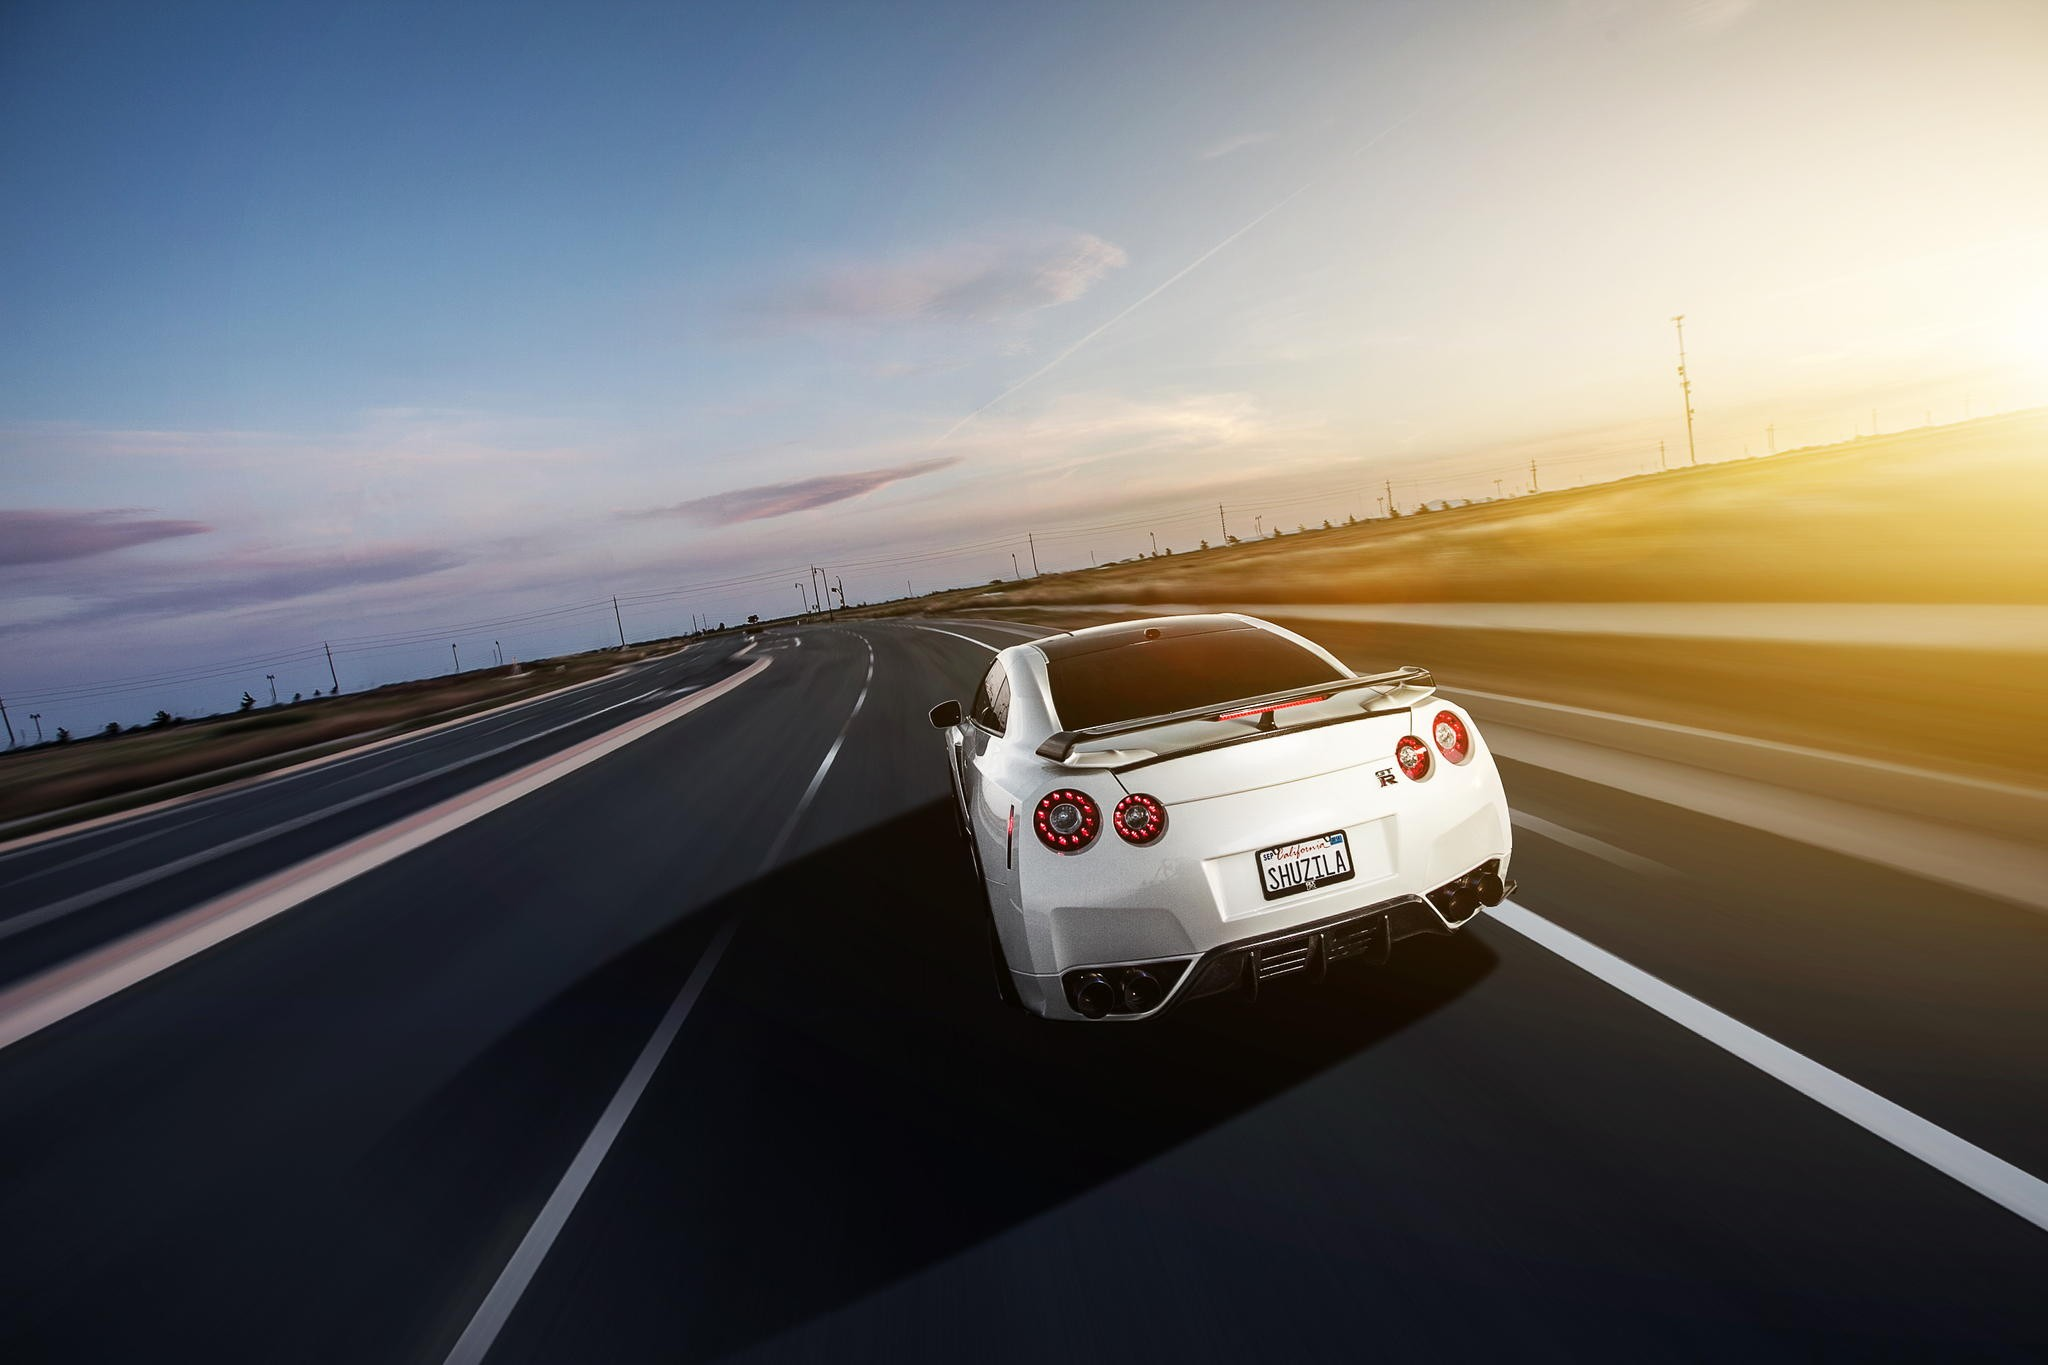 Car 5760x1080 Wallpaper Nissan Nissan Skyline Gt R R35 Car Highway Sunlight